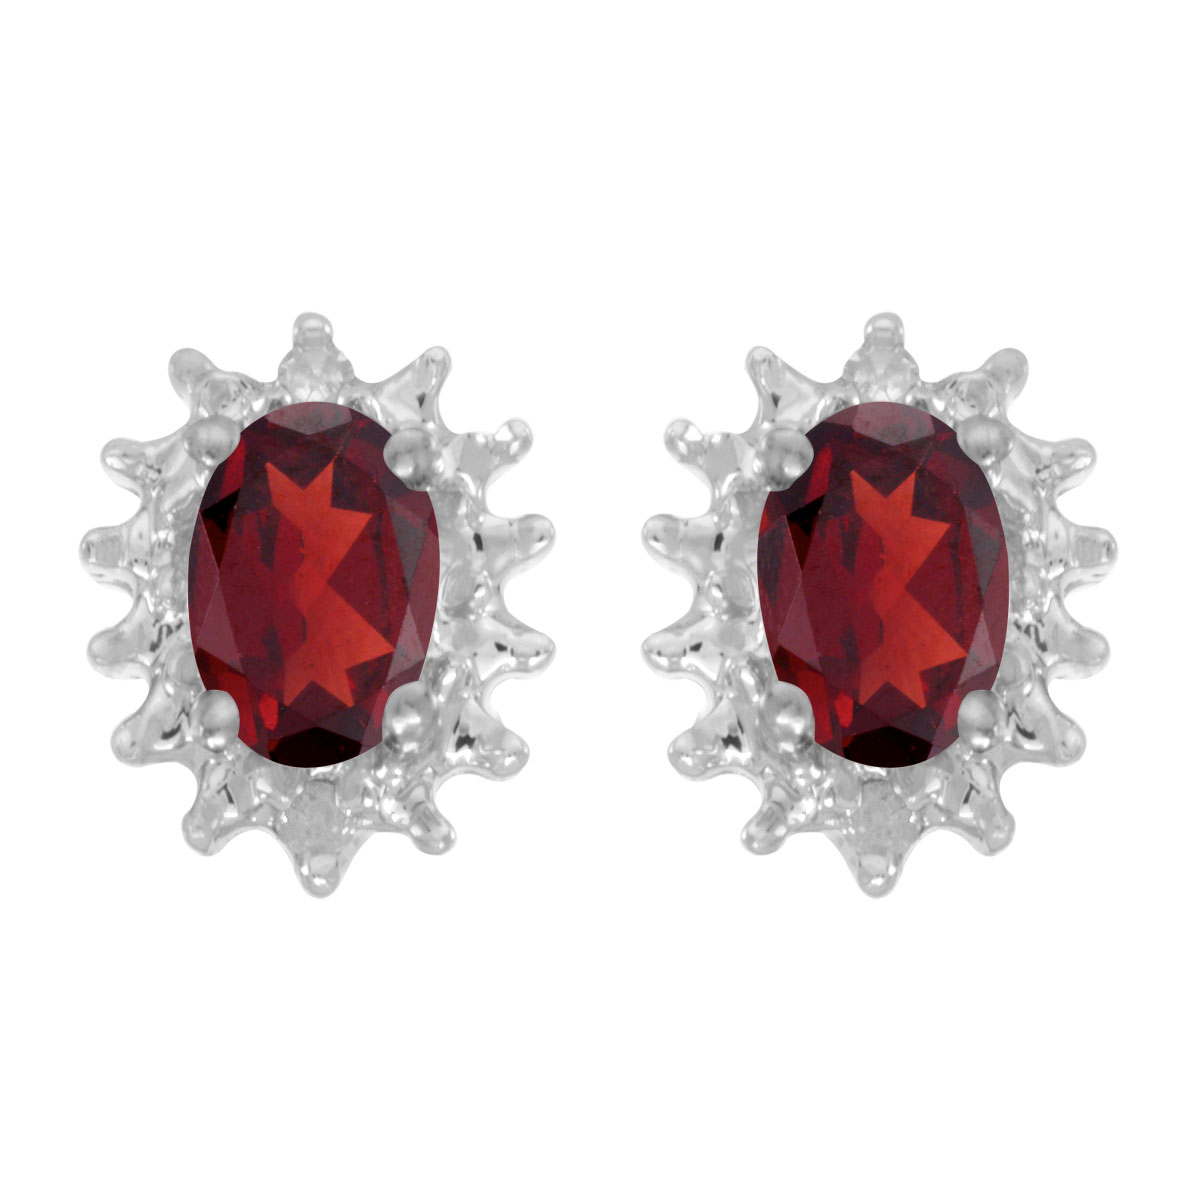 Direct-Jewelry 14k White Gold Oval Garnet And Diamond Earrings at Sears.com